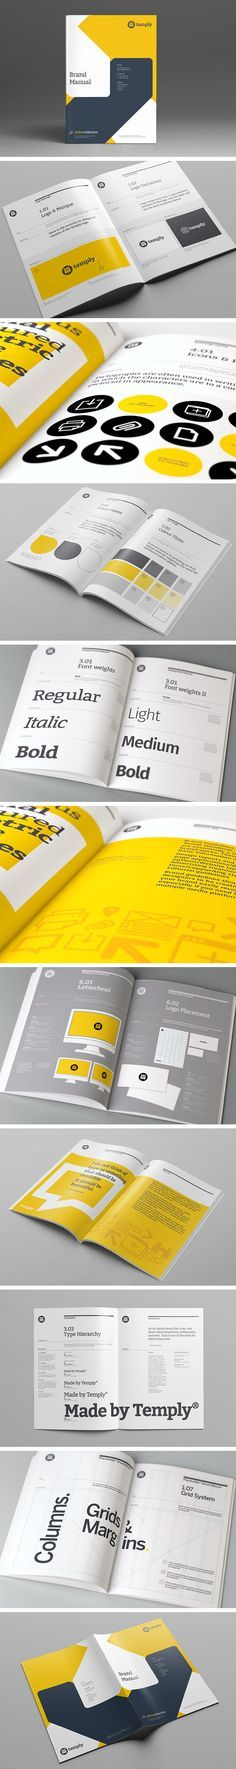 Brand Manual Template by Temply